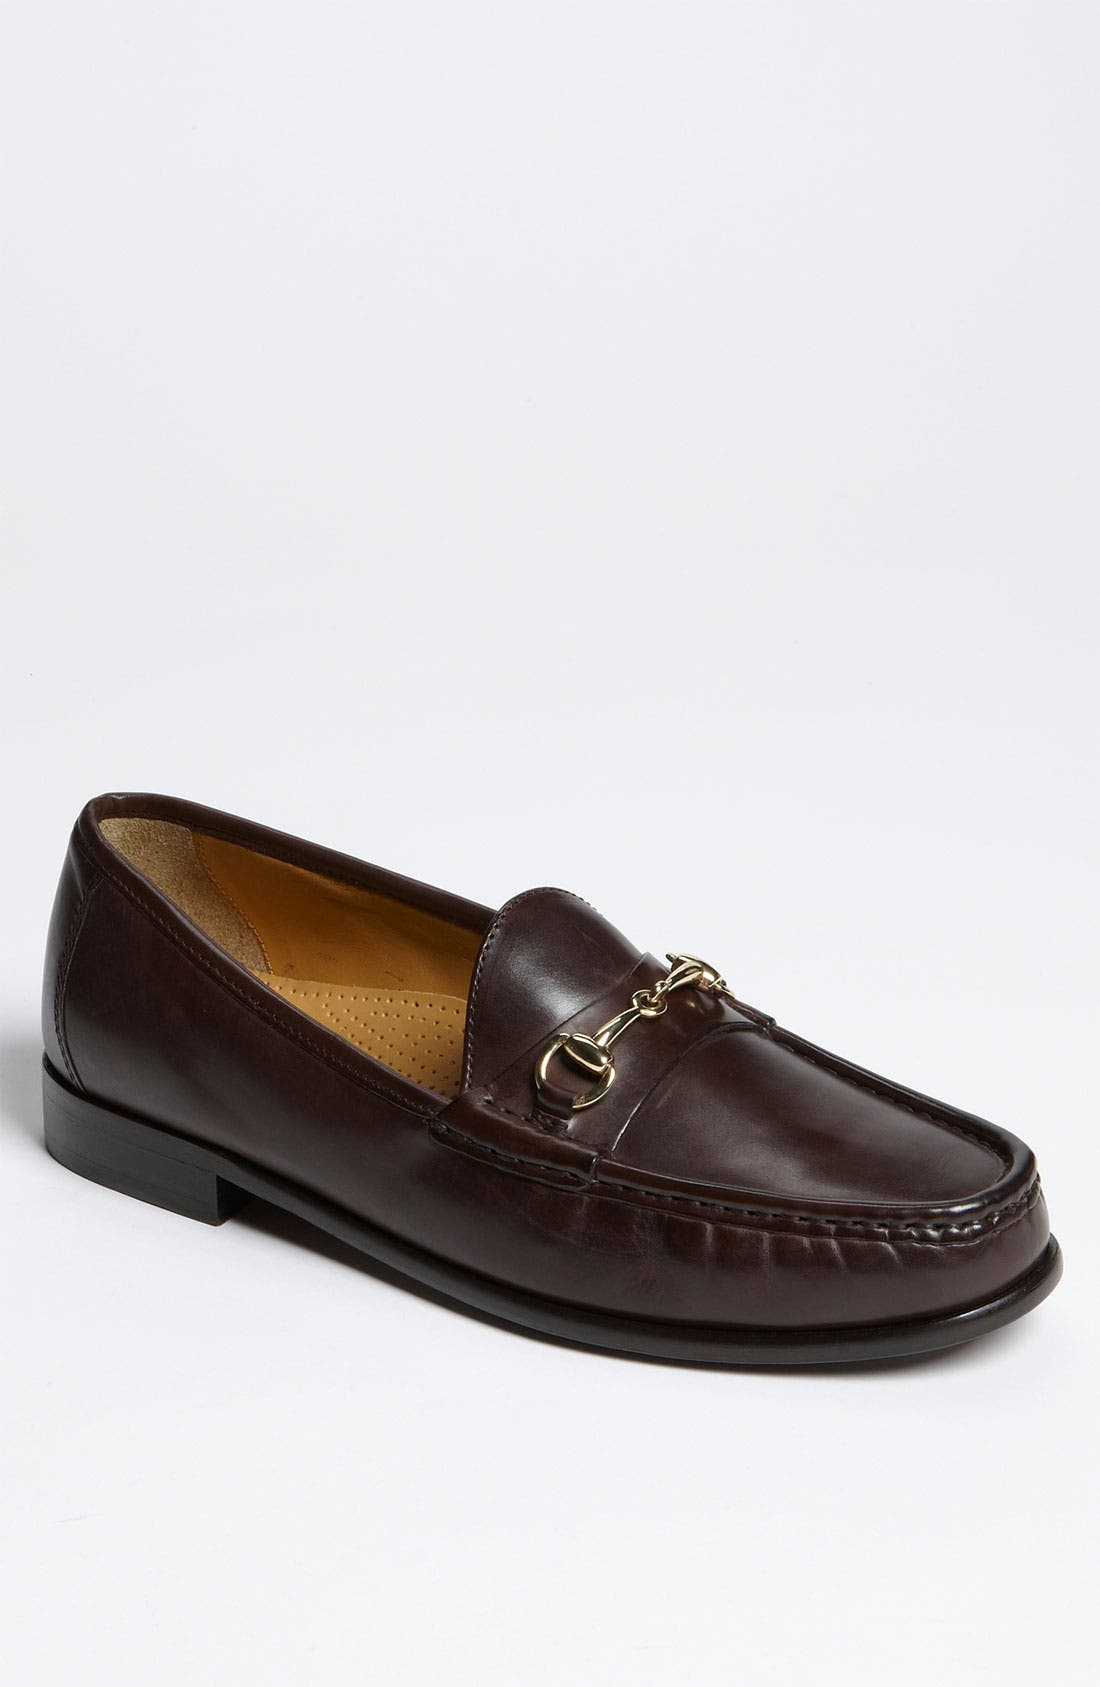 Alternate Image 1 Selected - Cole Haan 'Emory' Loafer (Online Exclusive)